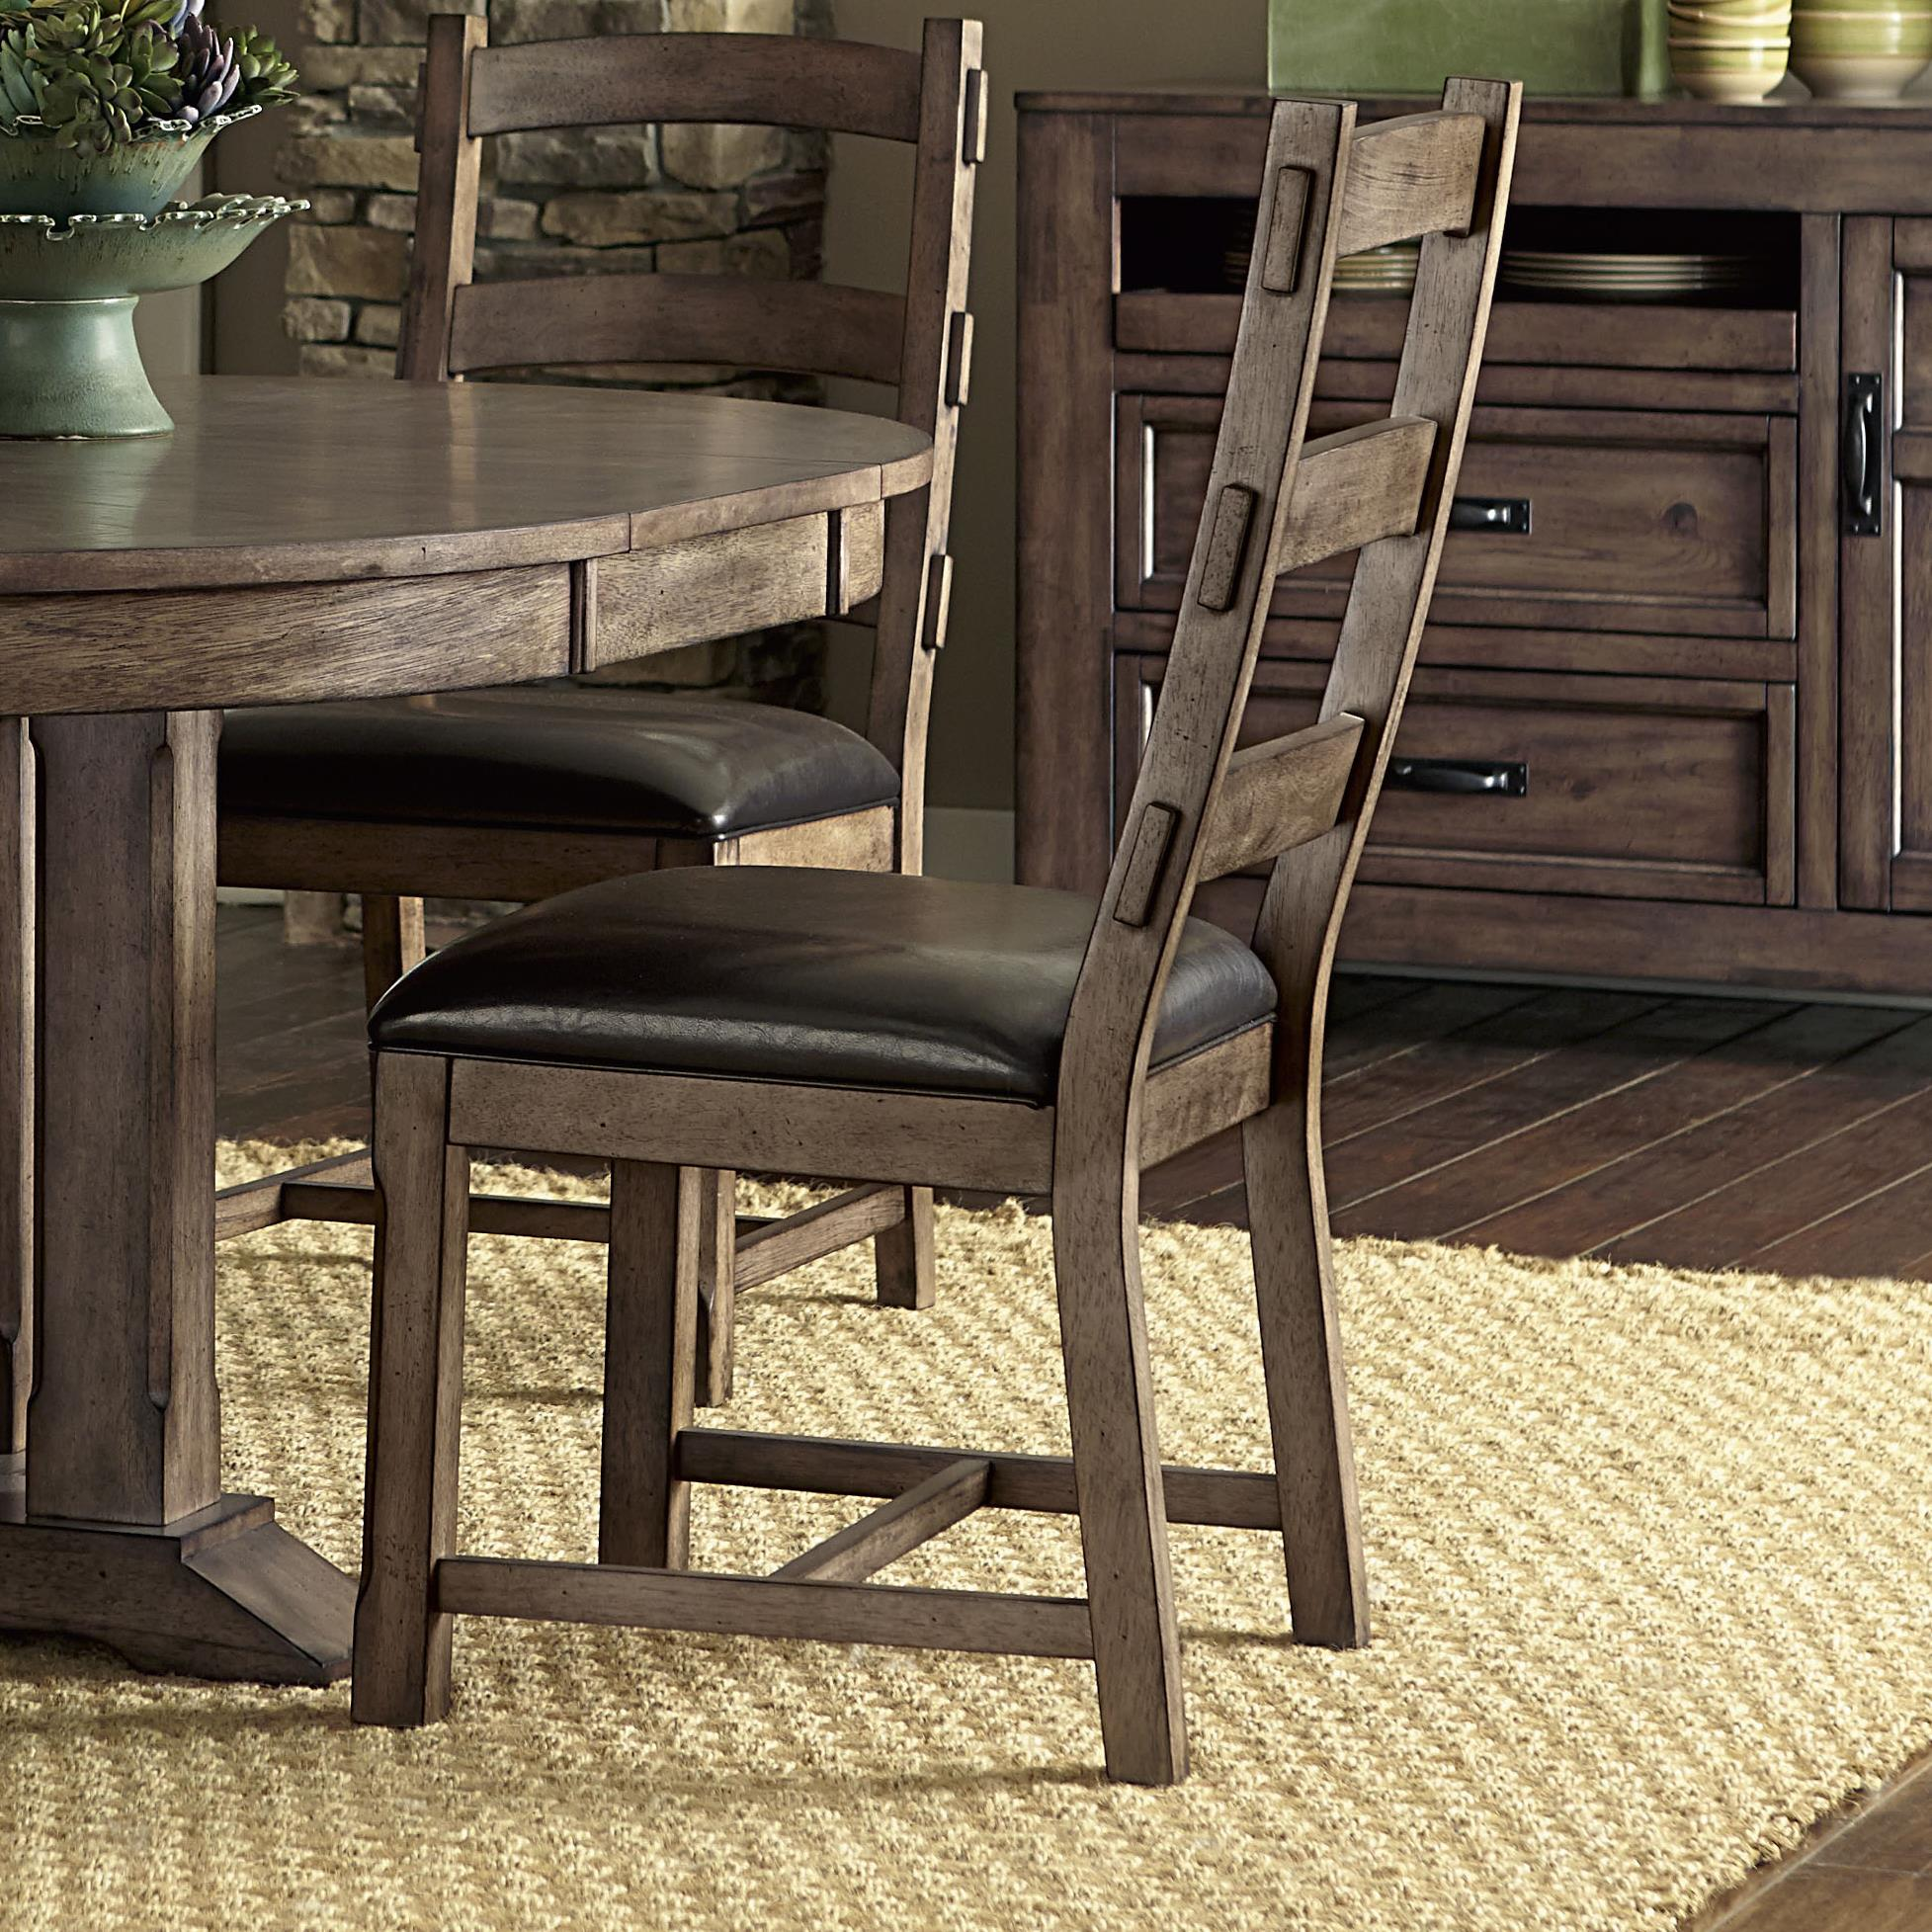 Progressive Furniture Boulder Creek P849 61 Dining Chair Northeast Factory Direct Dining